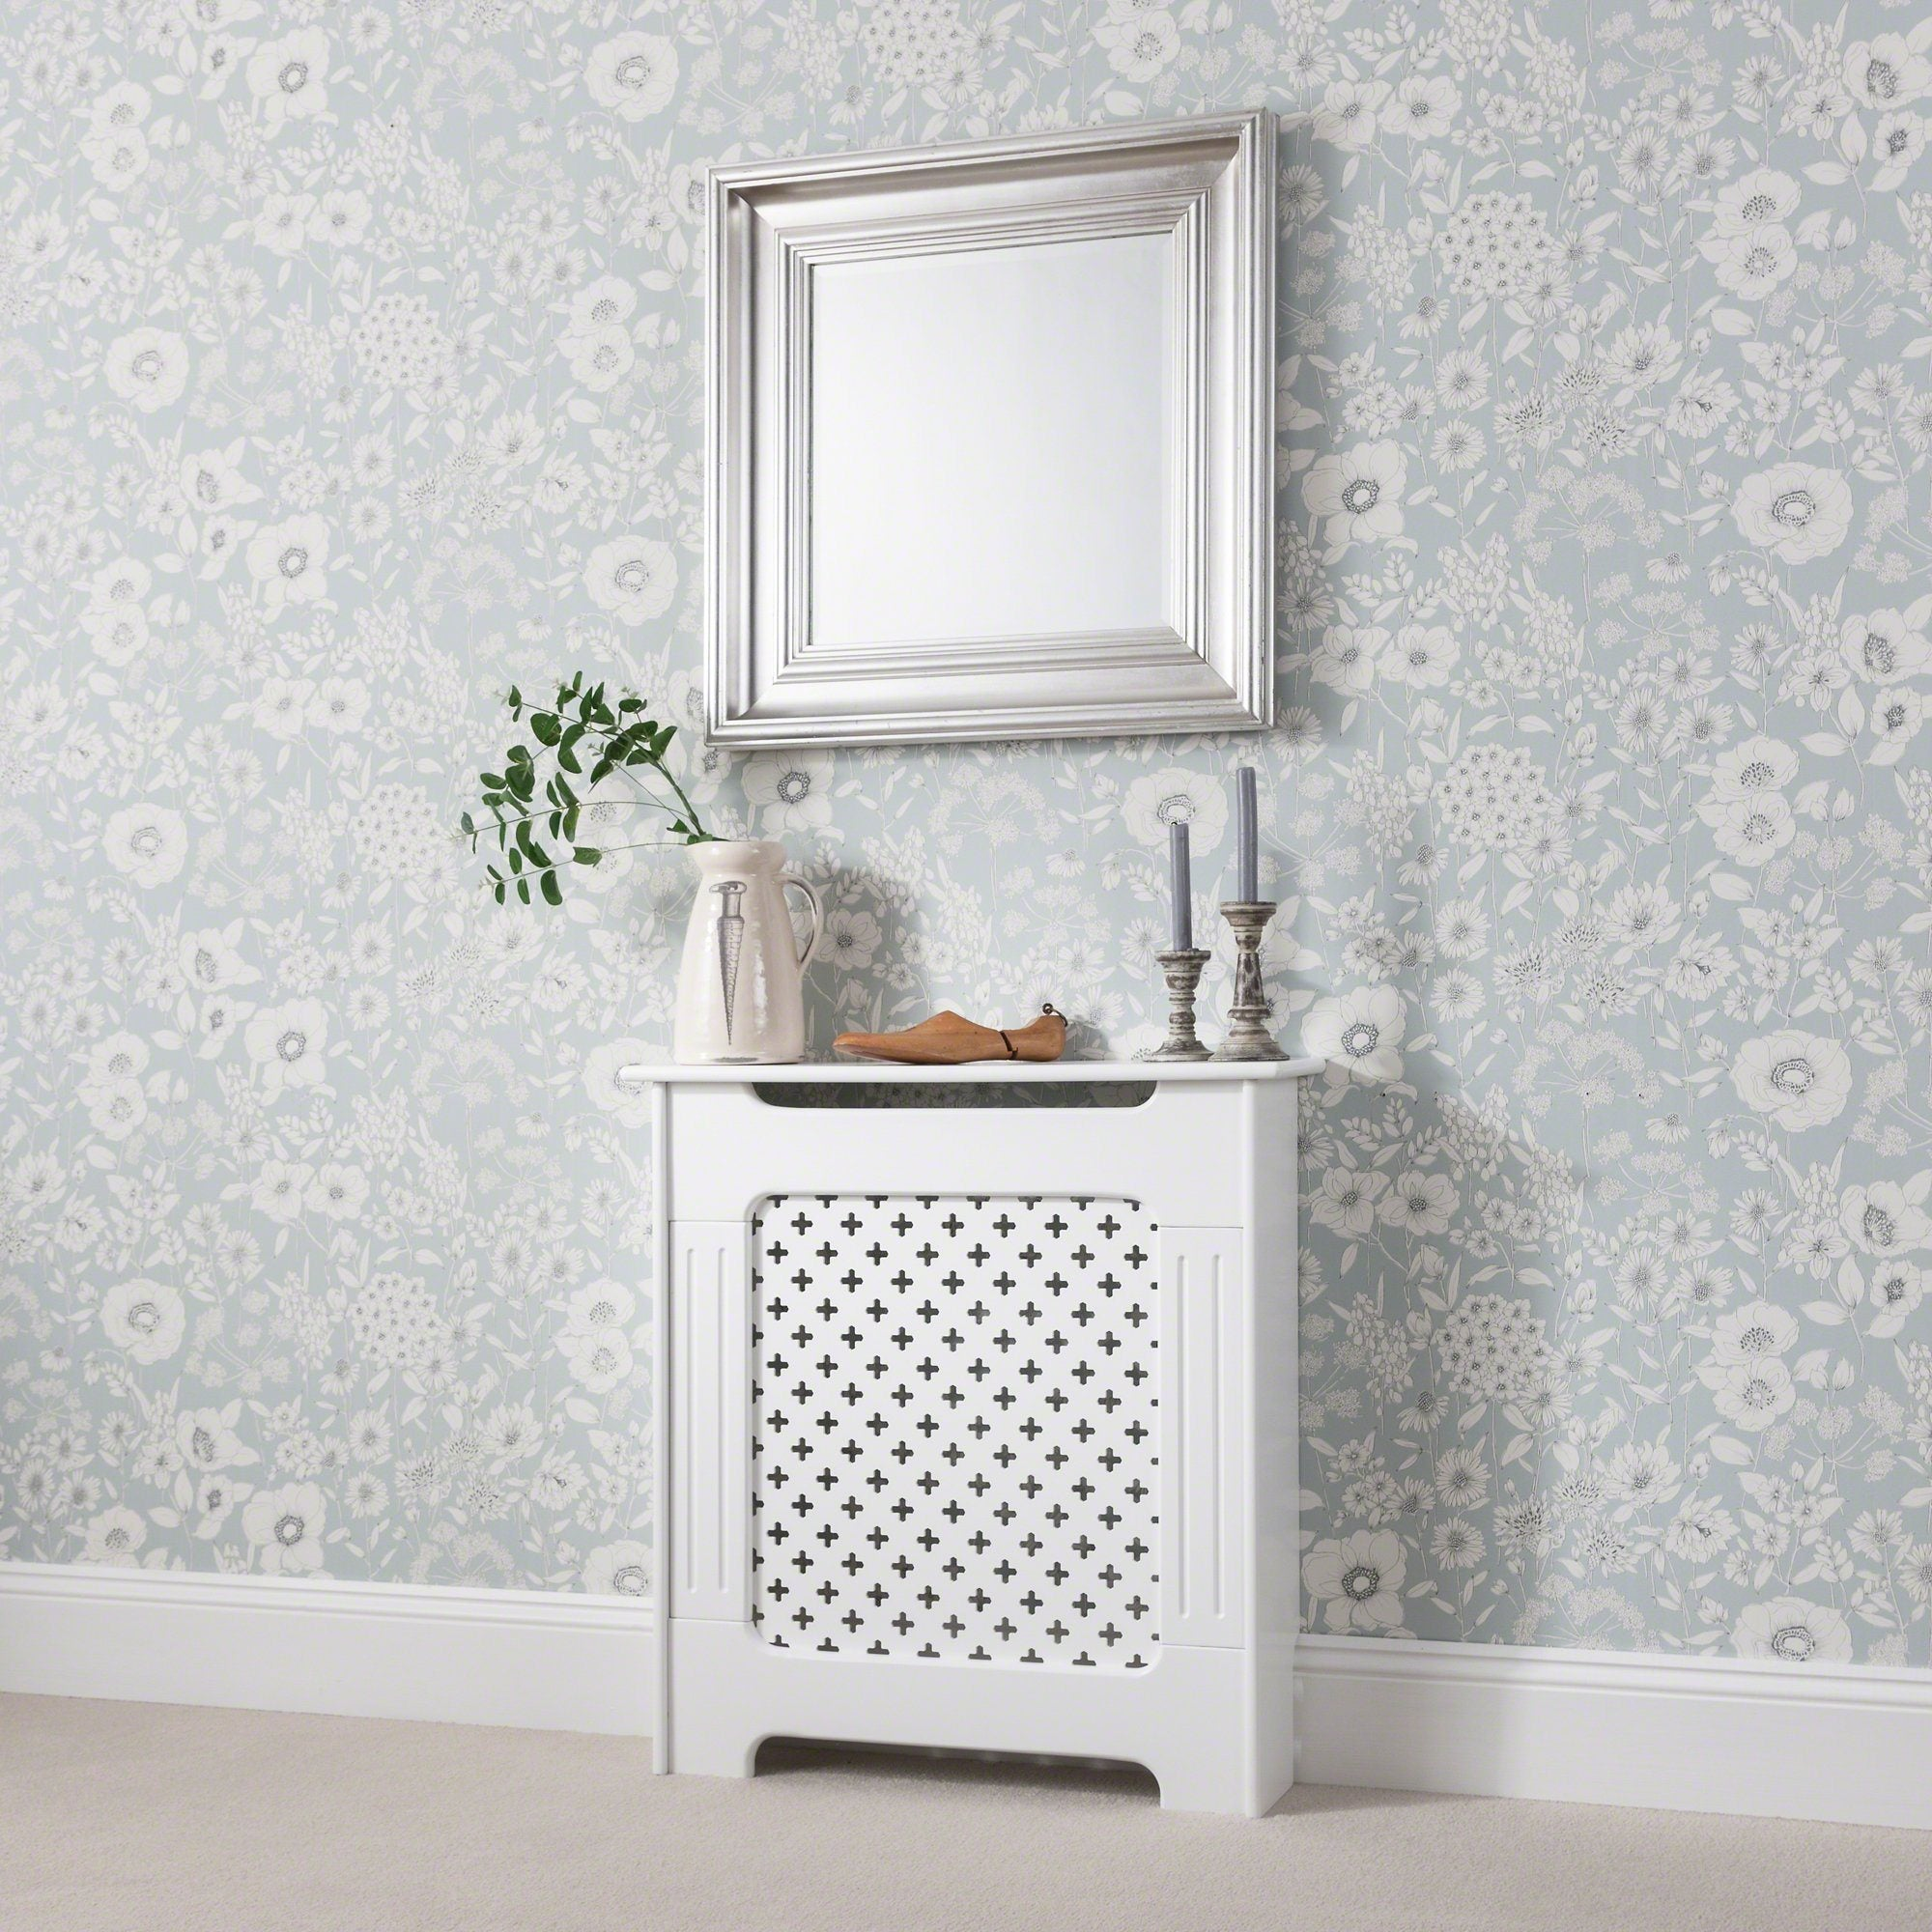 Radiator Cover White Painted Small Delivery On Or Before 19 February Laura James